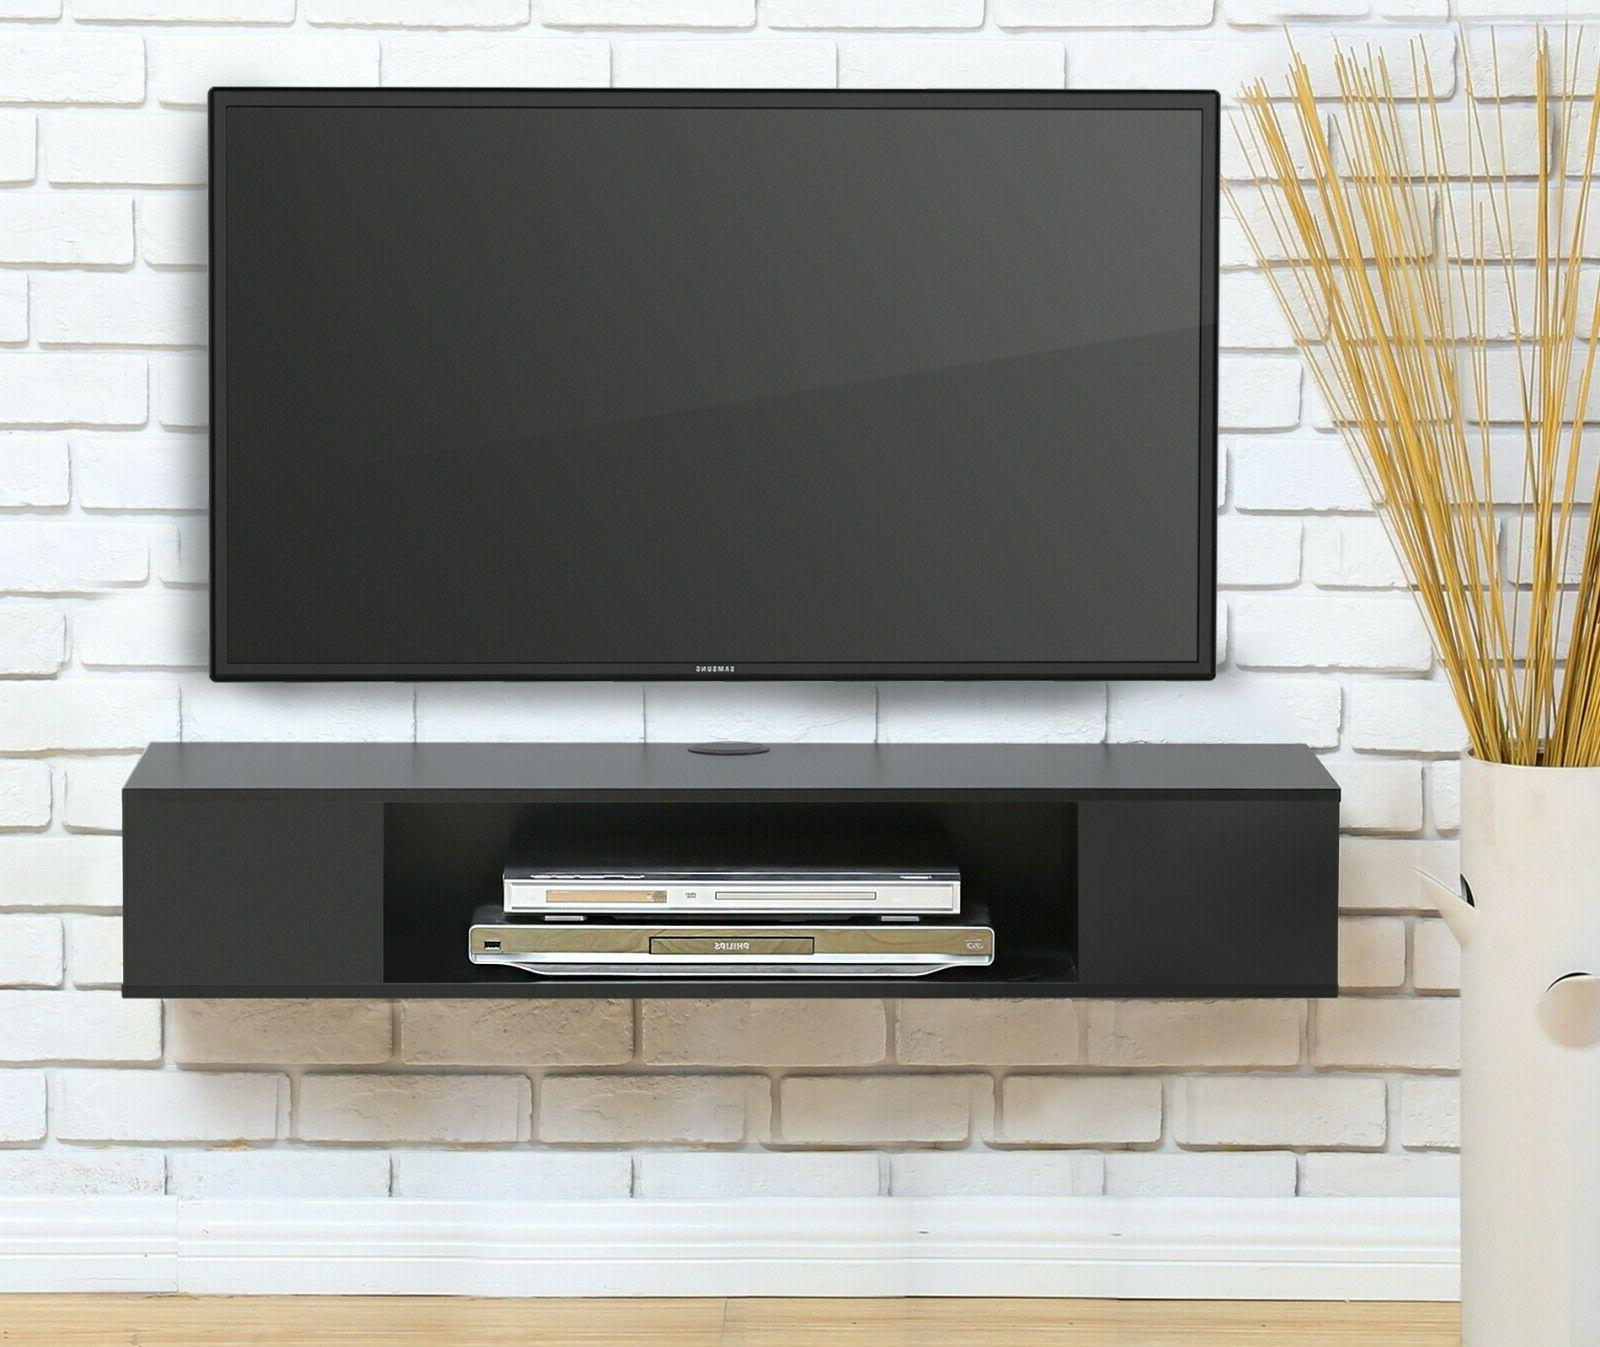 Wall Mount Media Console,Floating TV